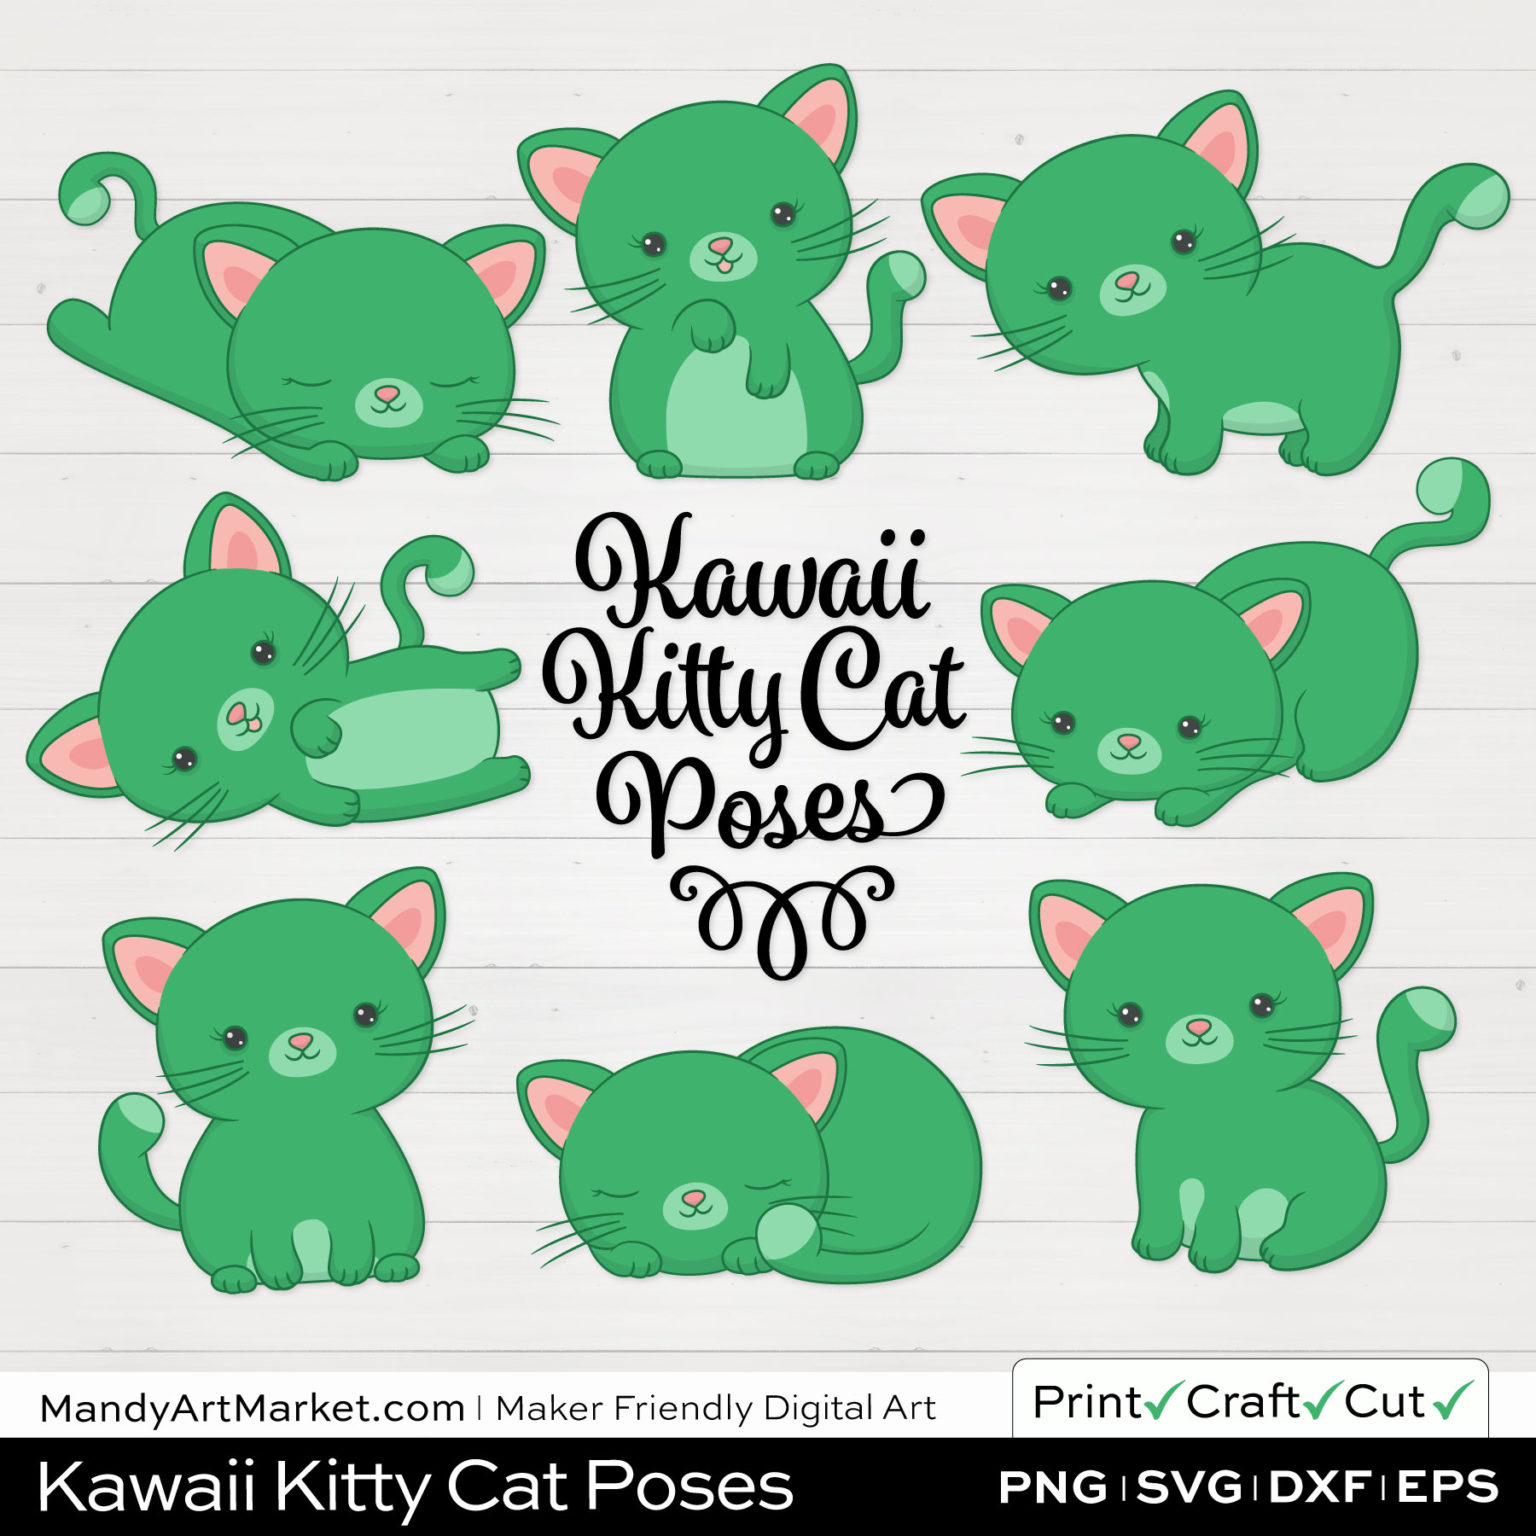 Kelly Green Kawaii Kitty Cat Poses Clipart on White Background